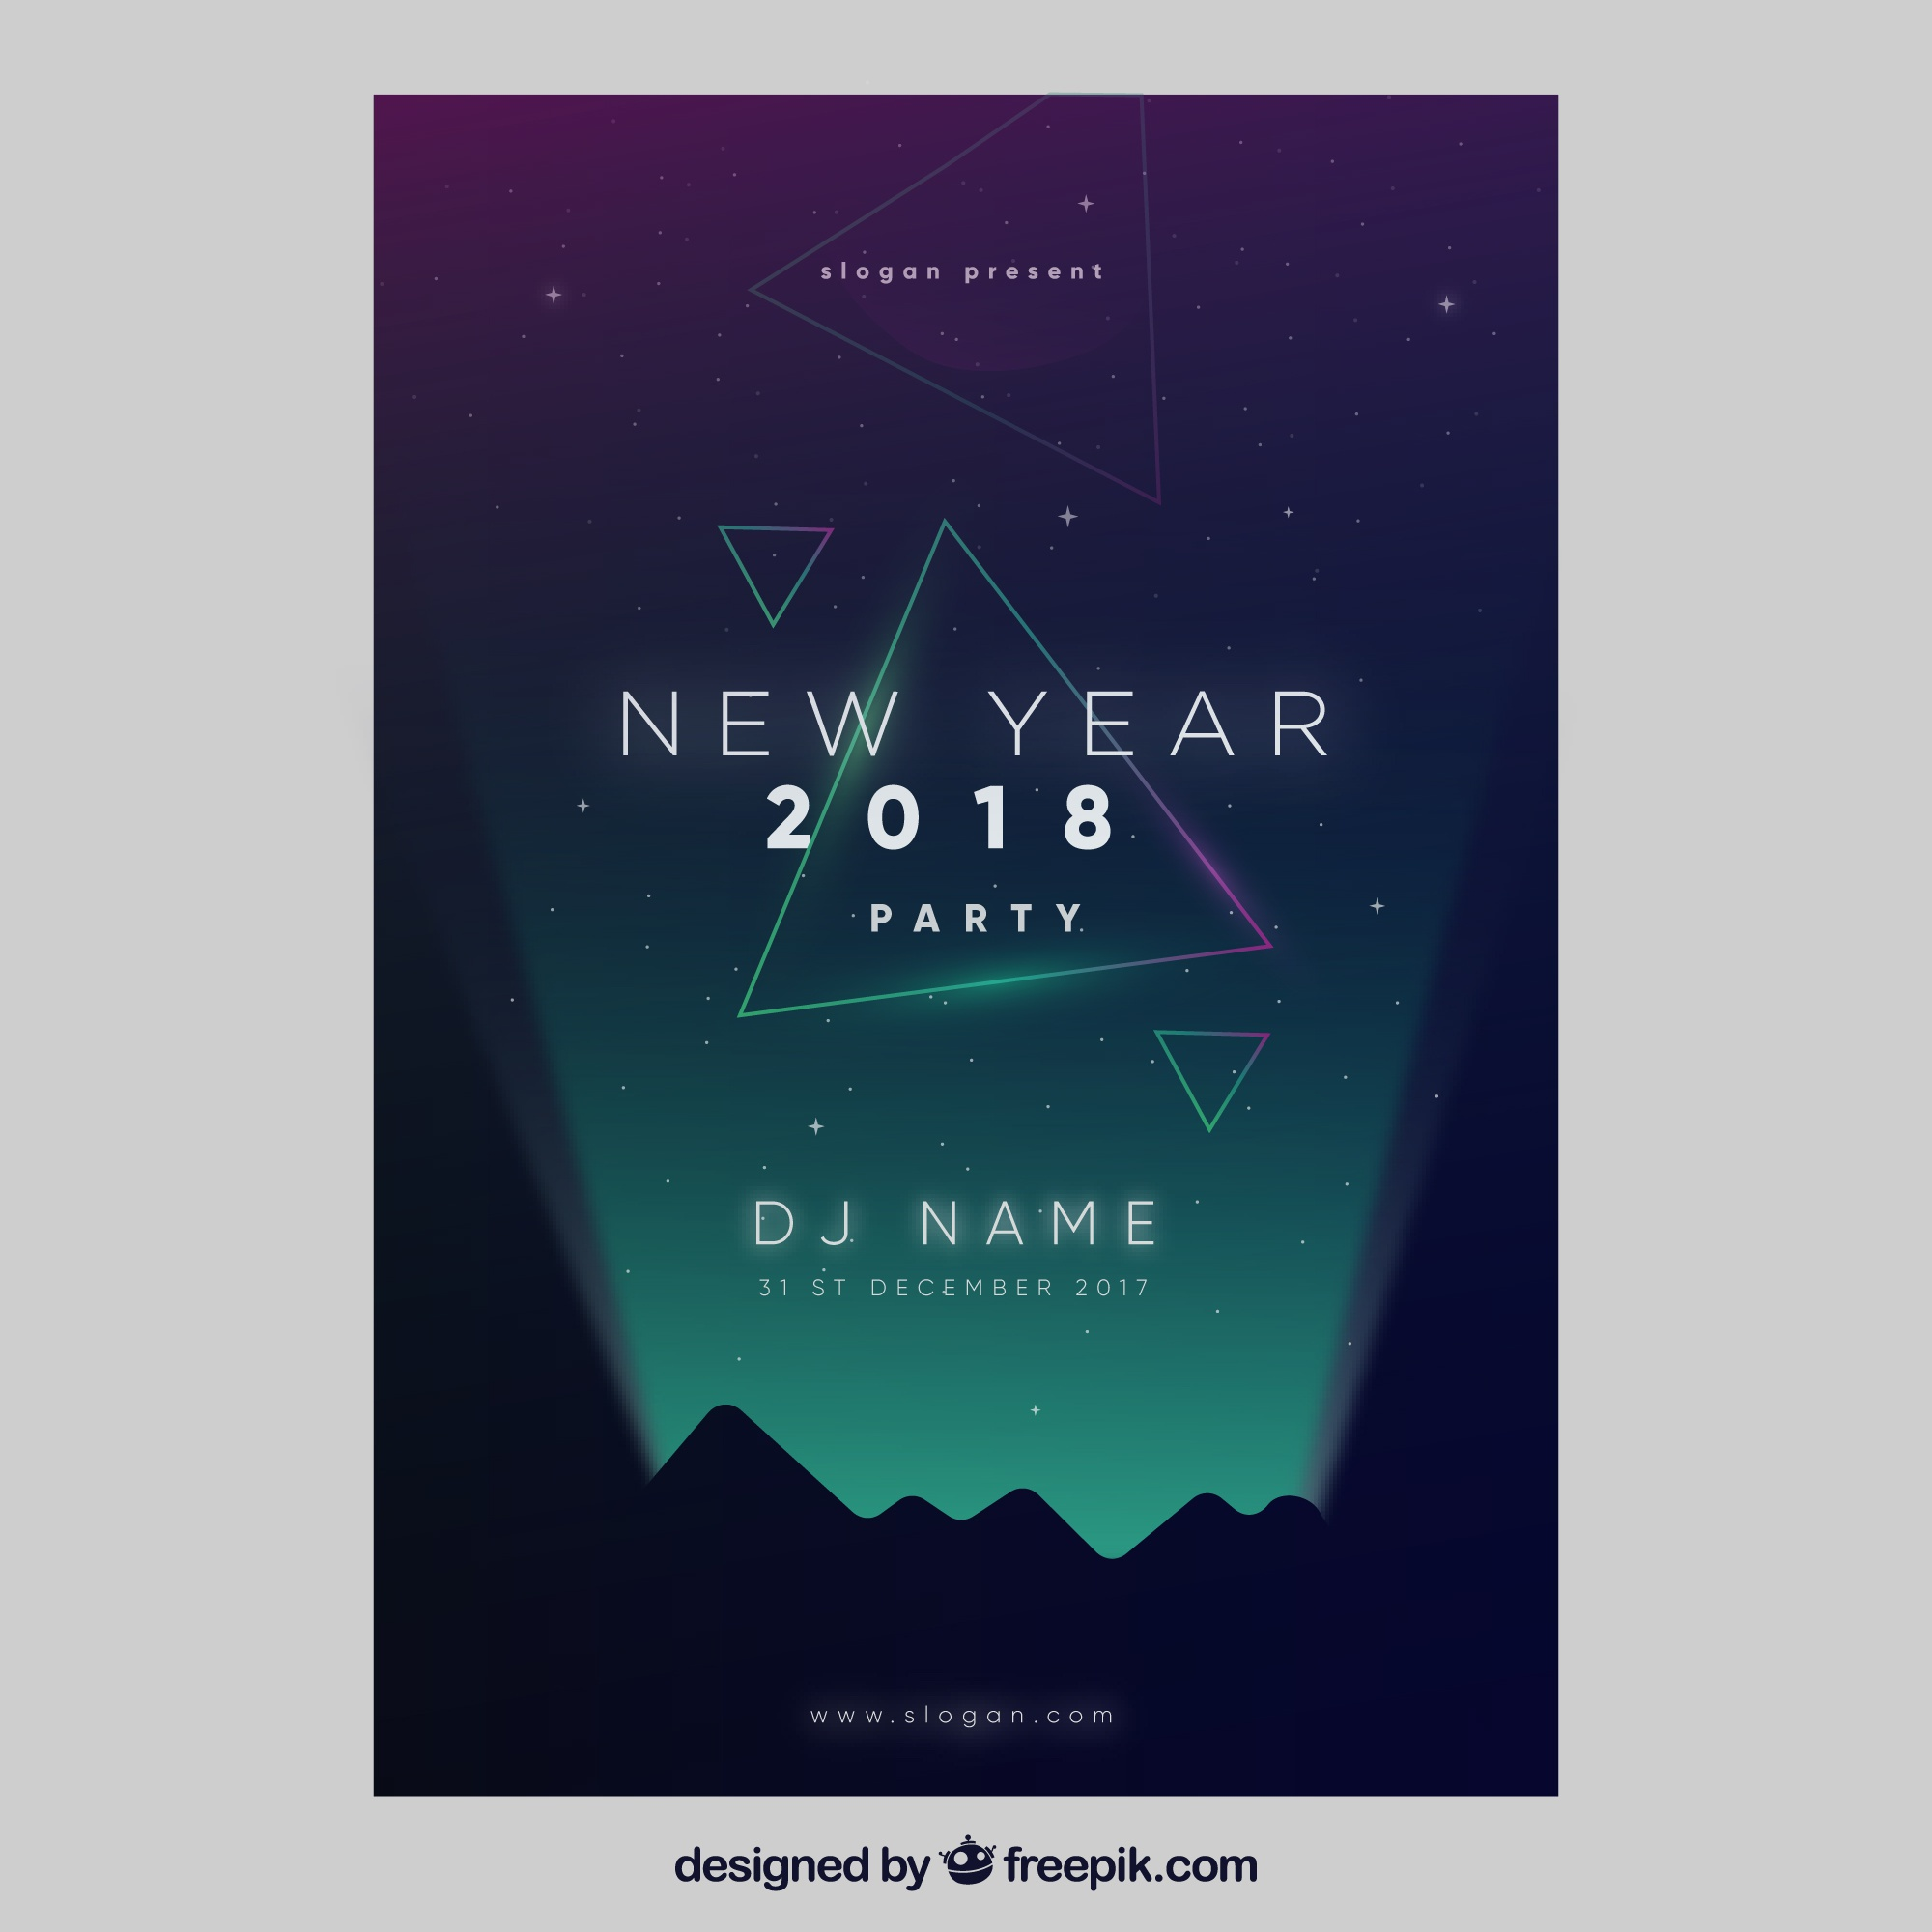 Elegant dark poster template for new year party